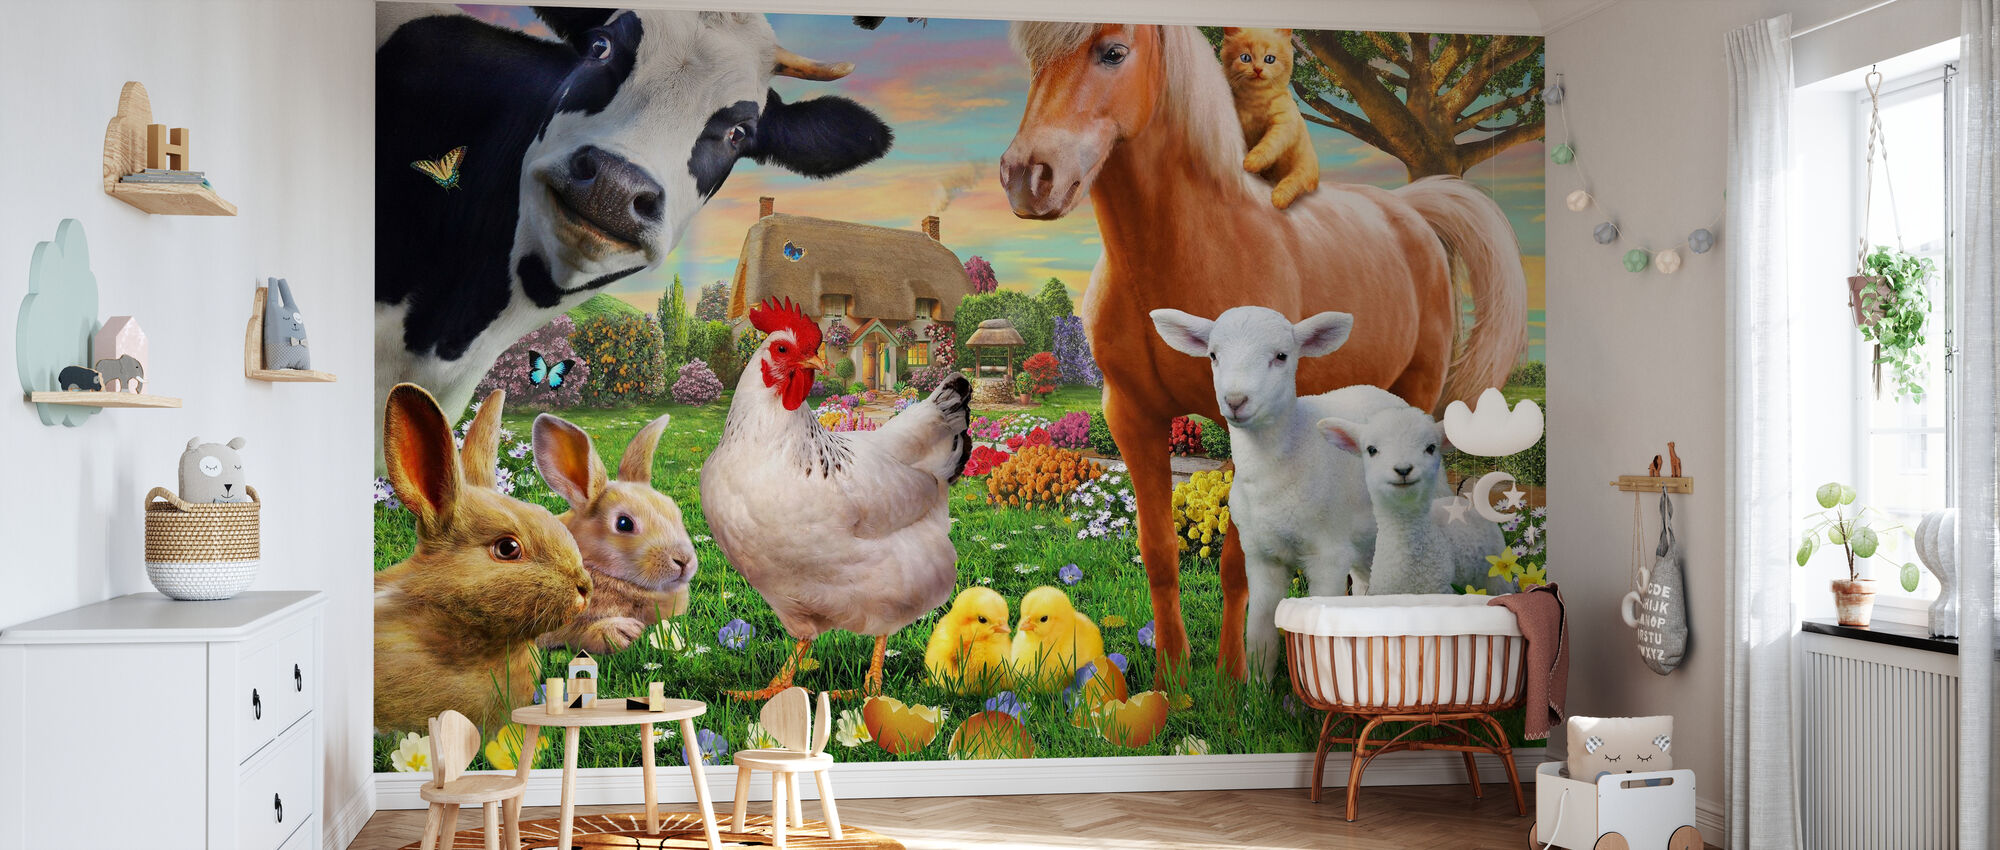 Farm Animals for kids - Wallpaper - Nursery